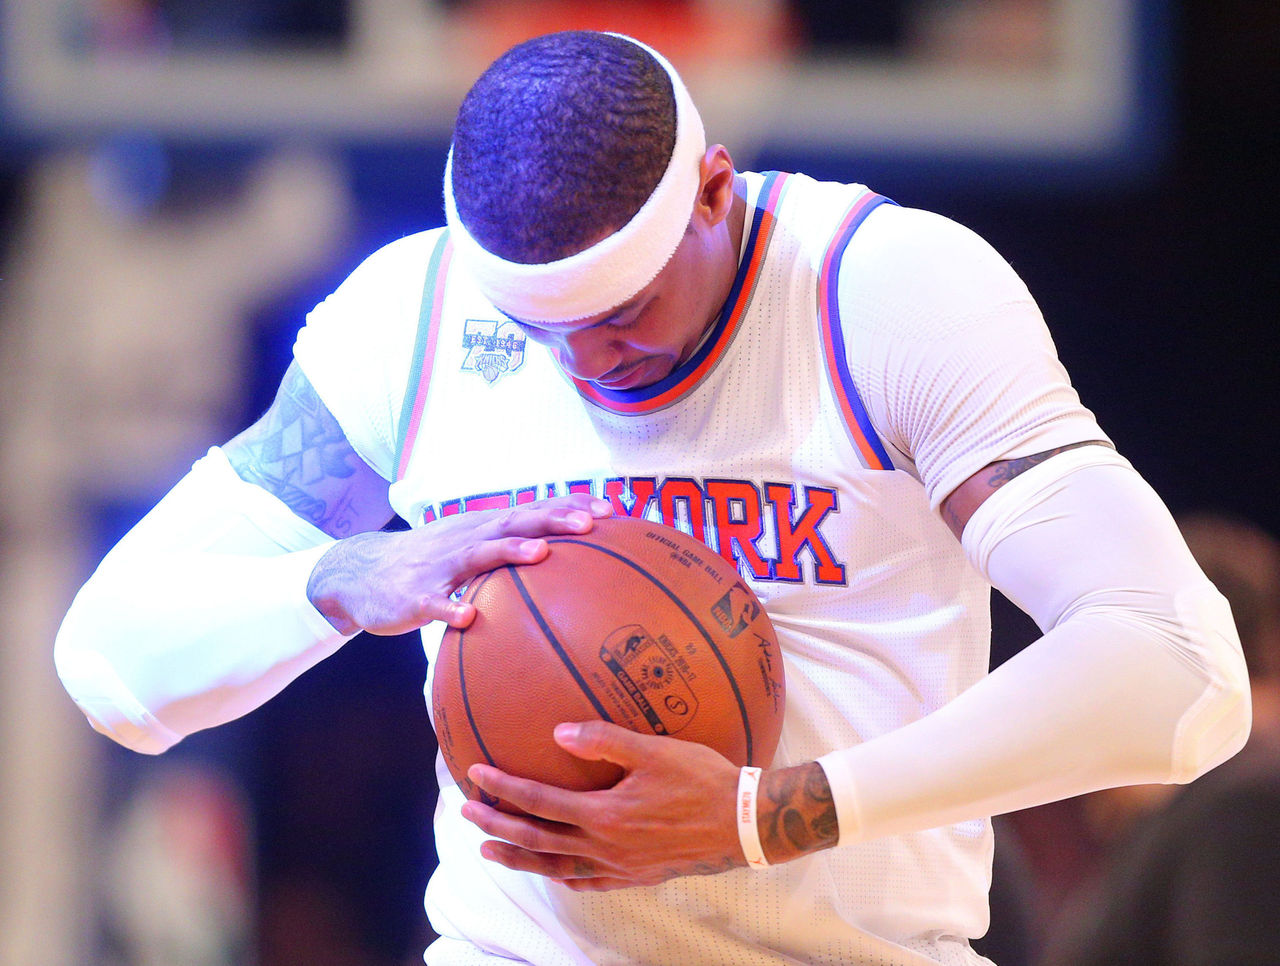 Cropped 2017 02 09t023044z 2141449639 nocid rtrmadp 3 nba los angeles clippers at new york knicks